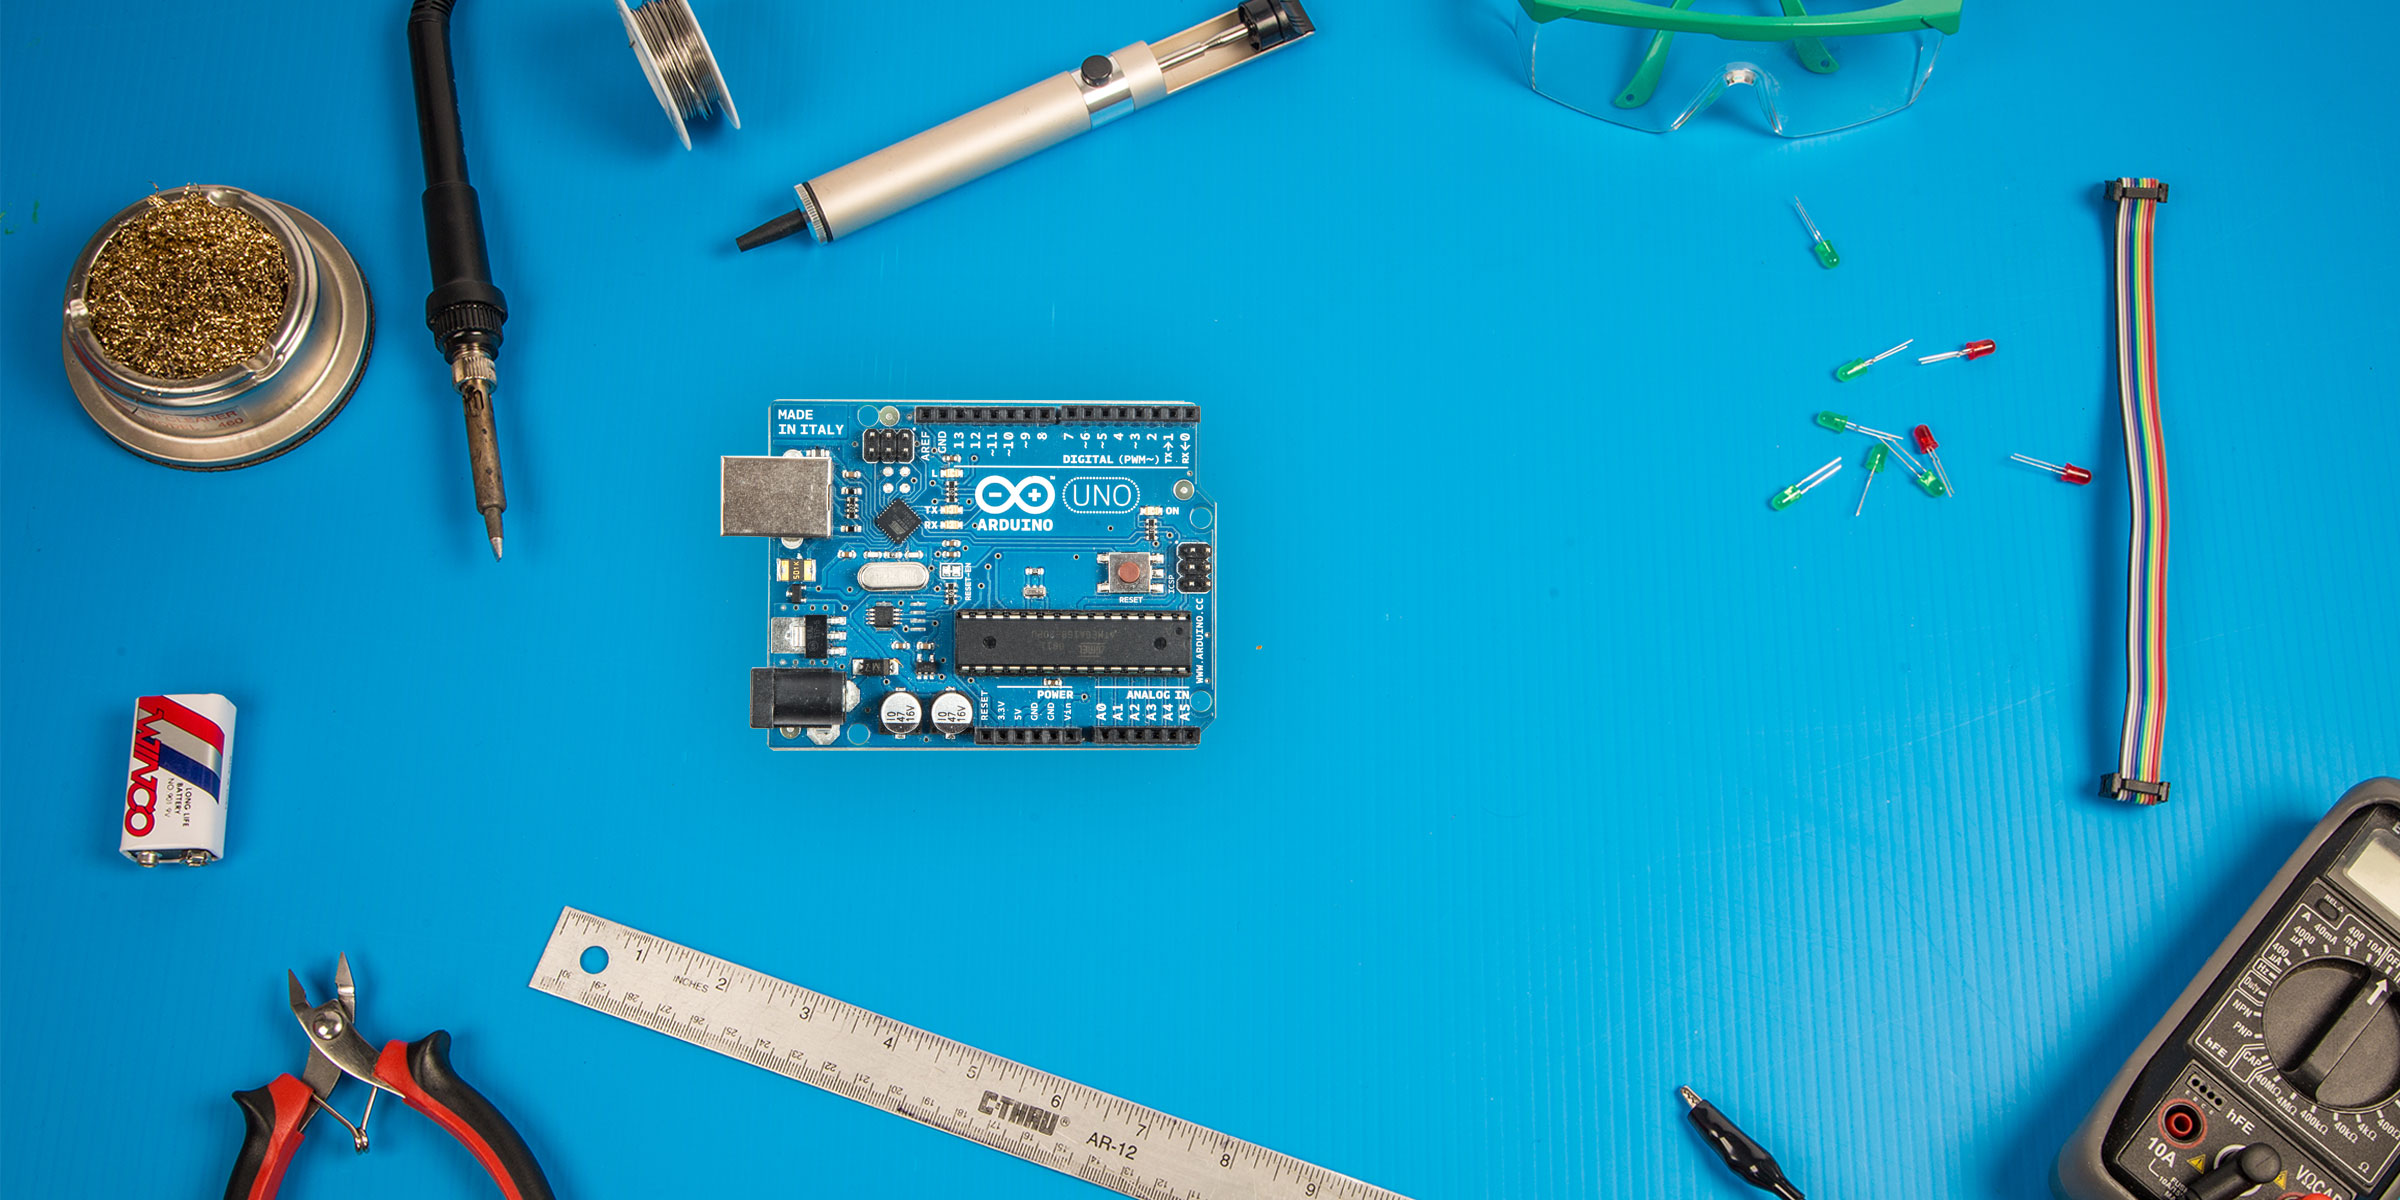 Arduino Uno Make Diy Projects And Ideas For Makers Digital Electronic With Circuit